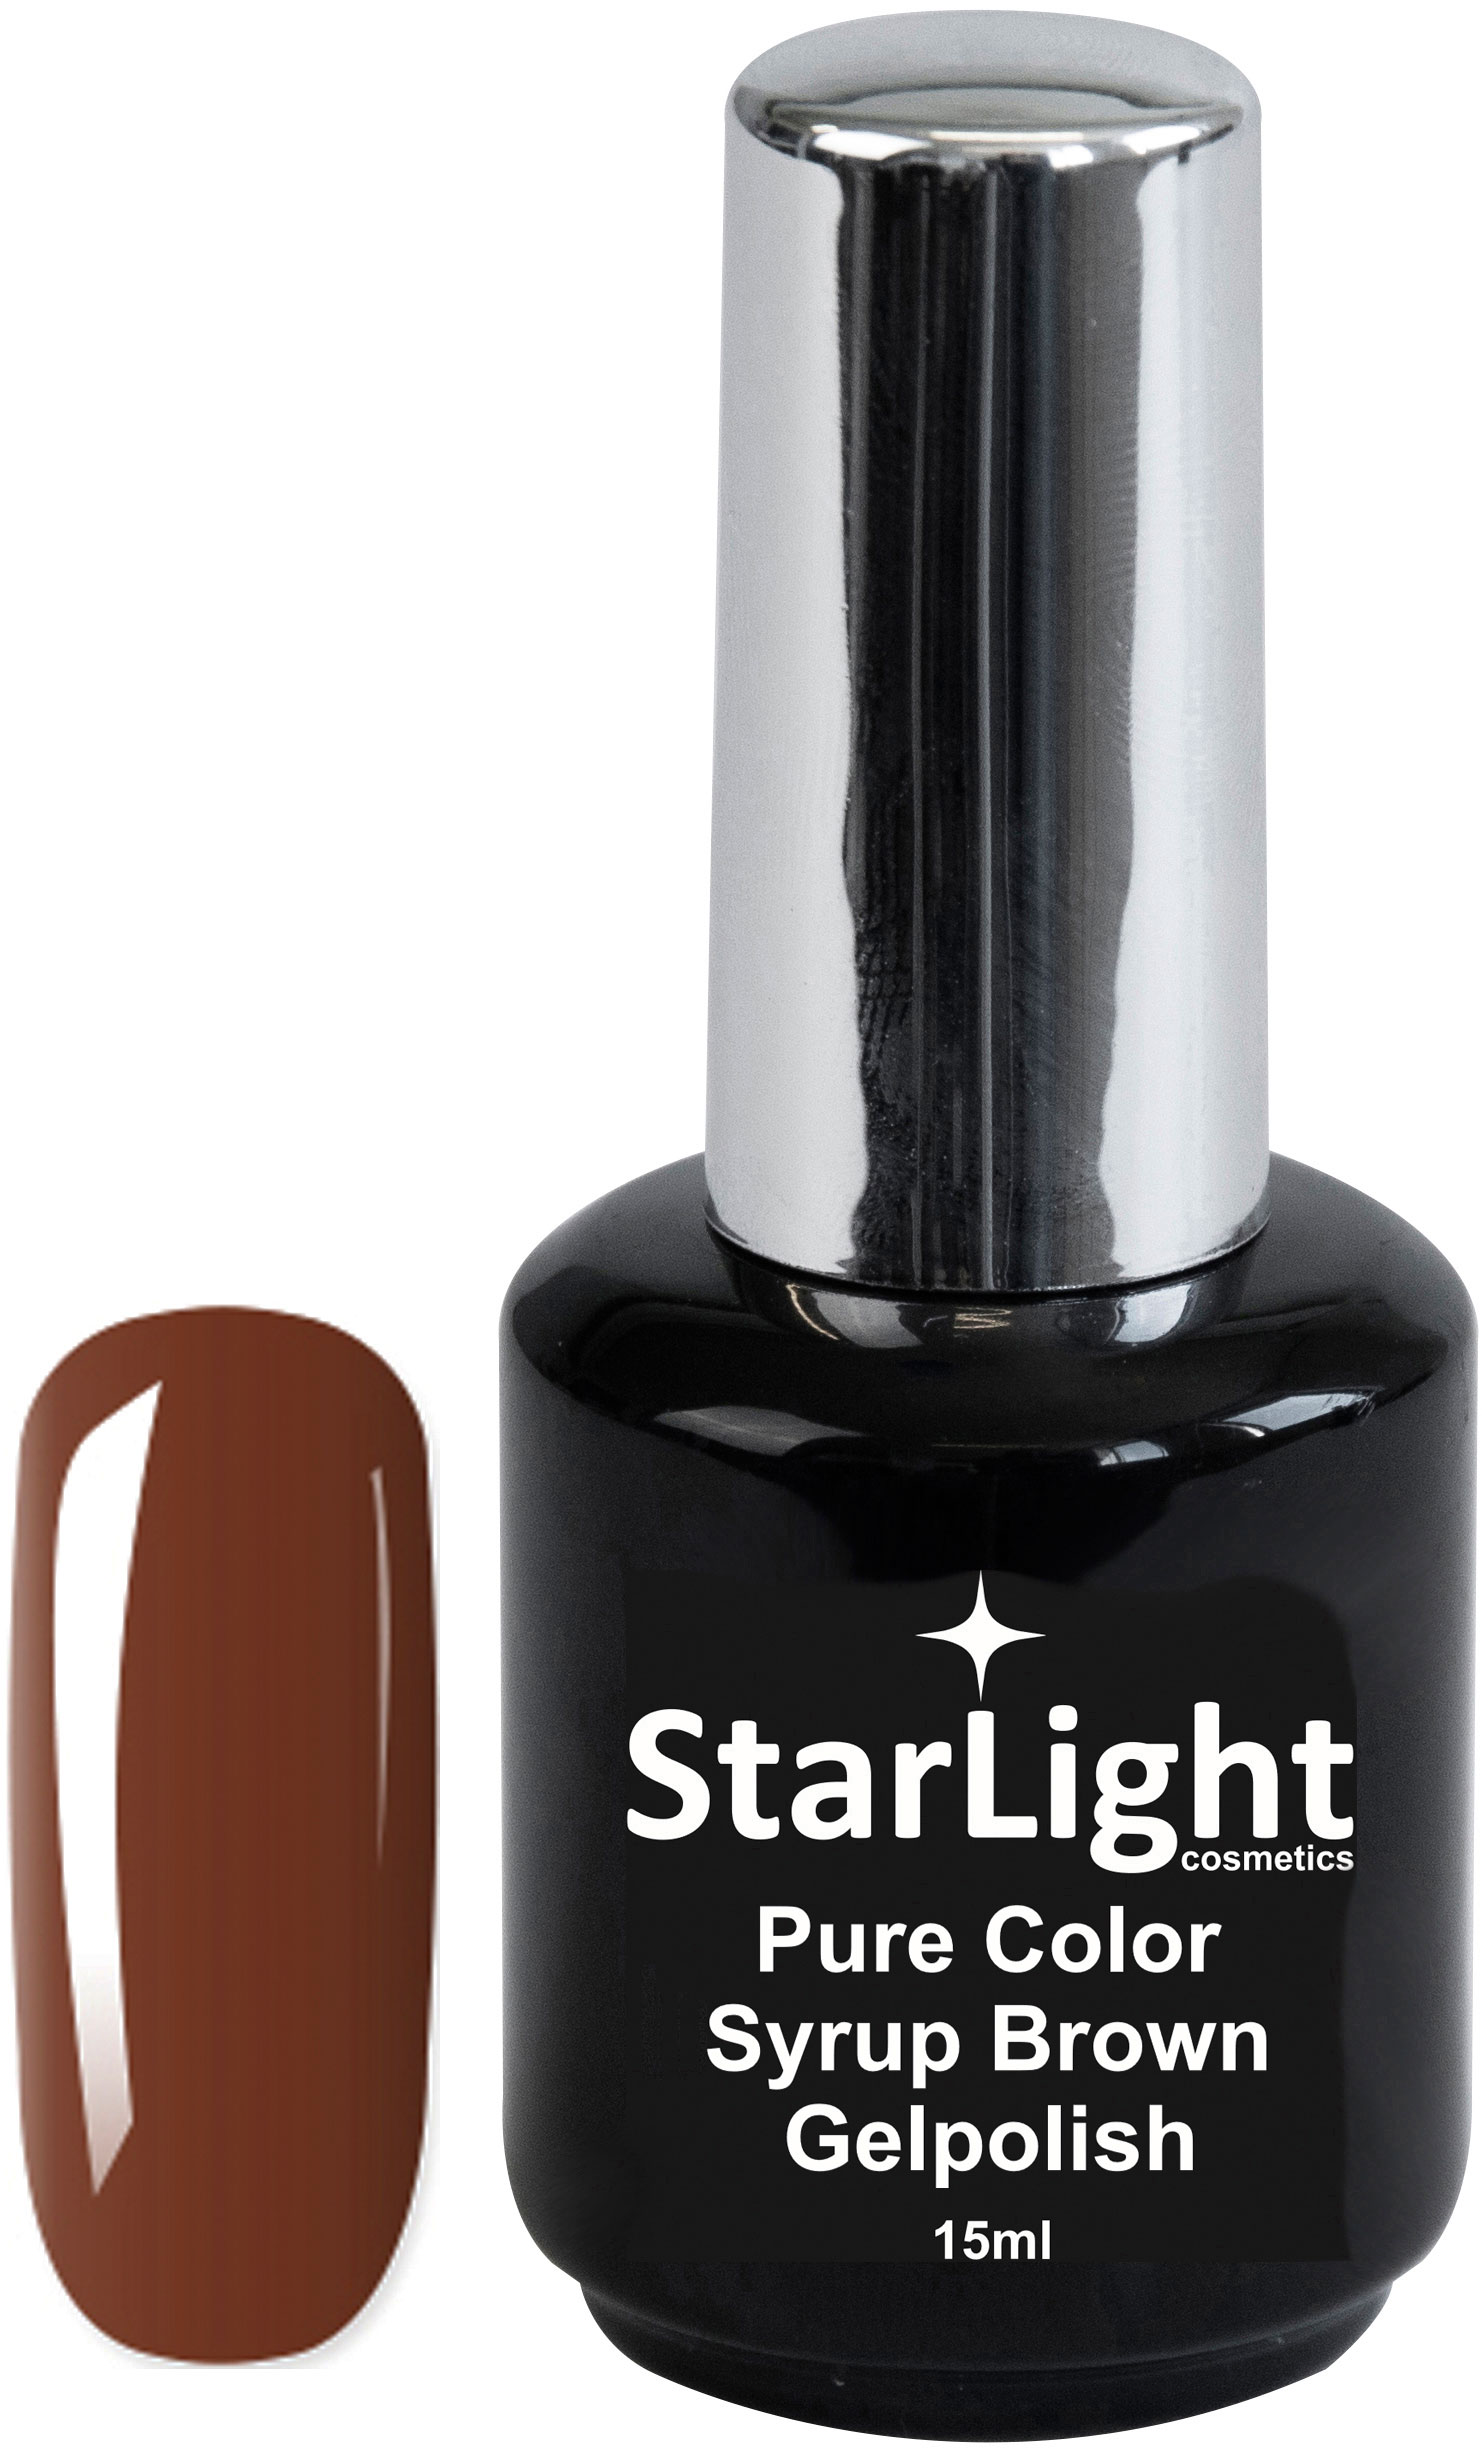 Naglar Gelpolish Pure Color Syrup Brown - 15 ml